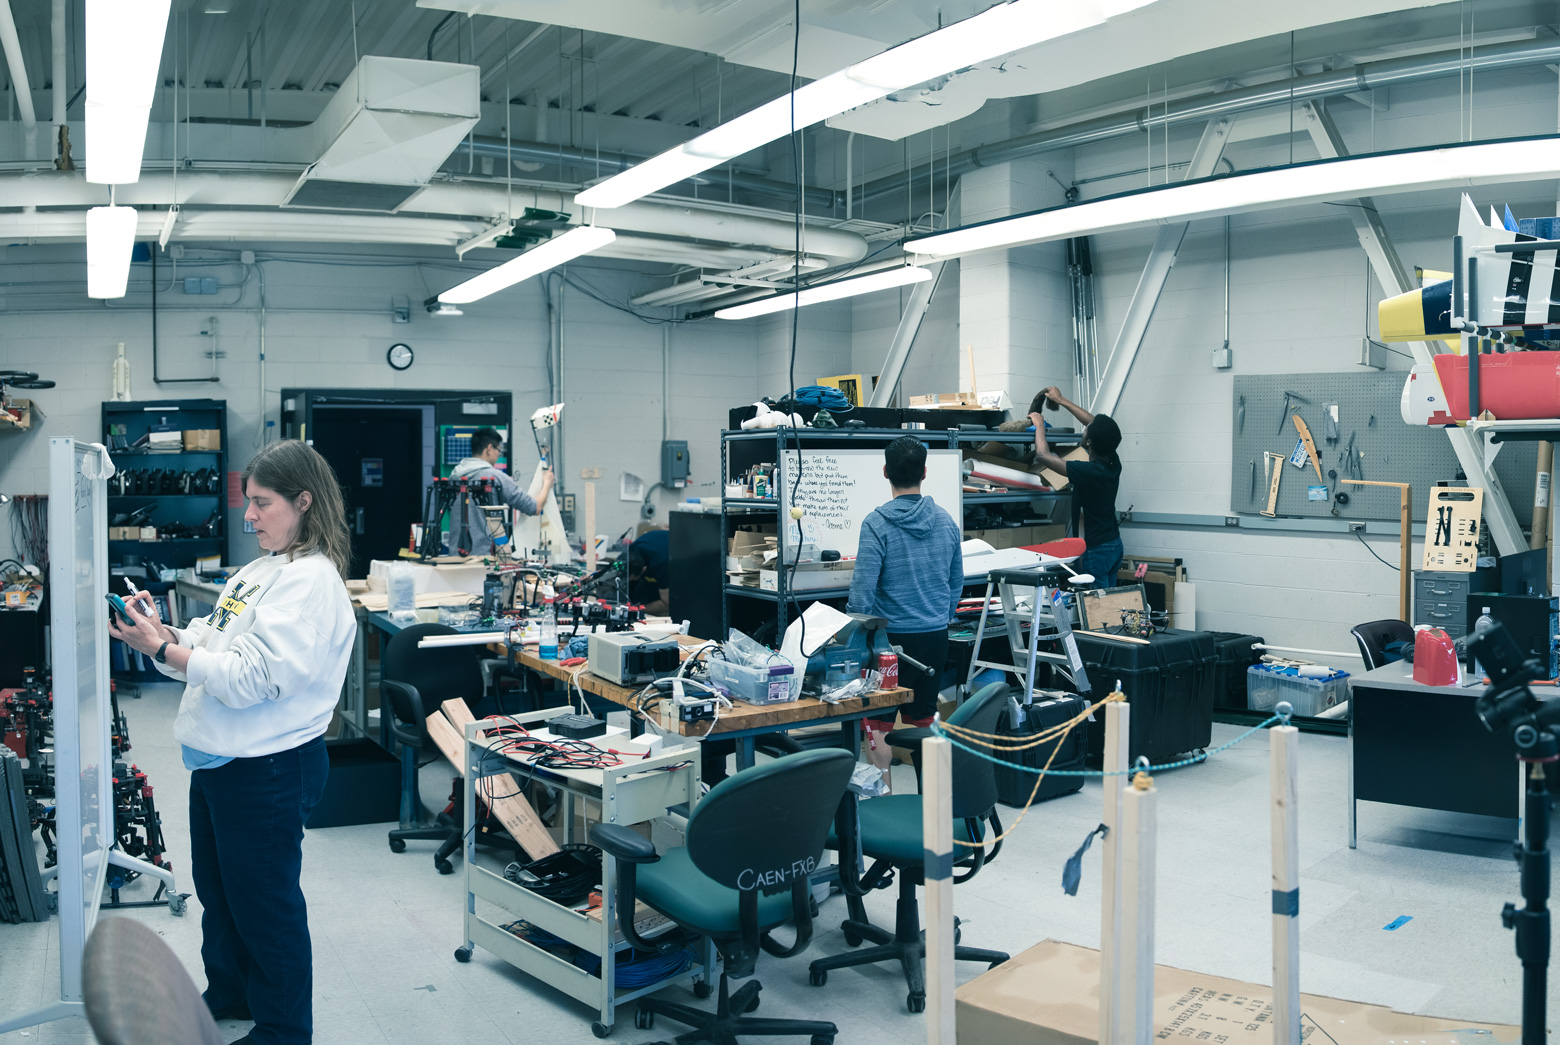 Atkins and her students work in the Autonomous Aerospace Systems Laboratory. They develop software to enable safe, autonomous flight in conventional fixed-wing aircraft as well as newer multicopters.